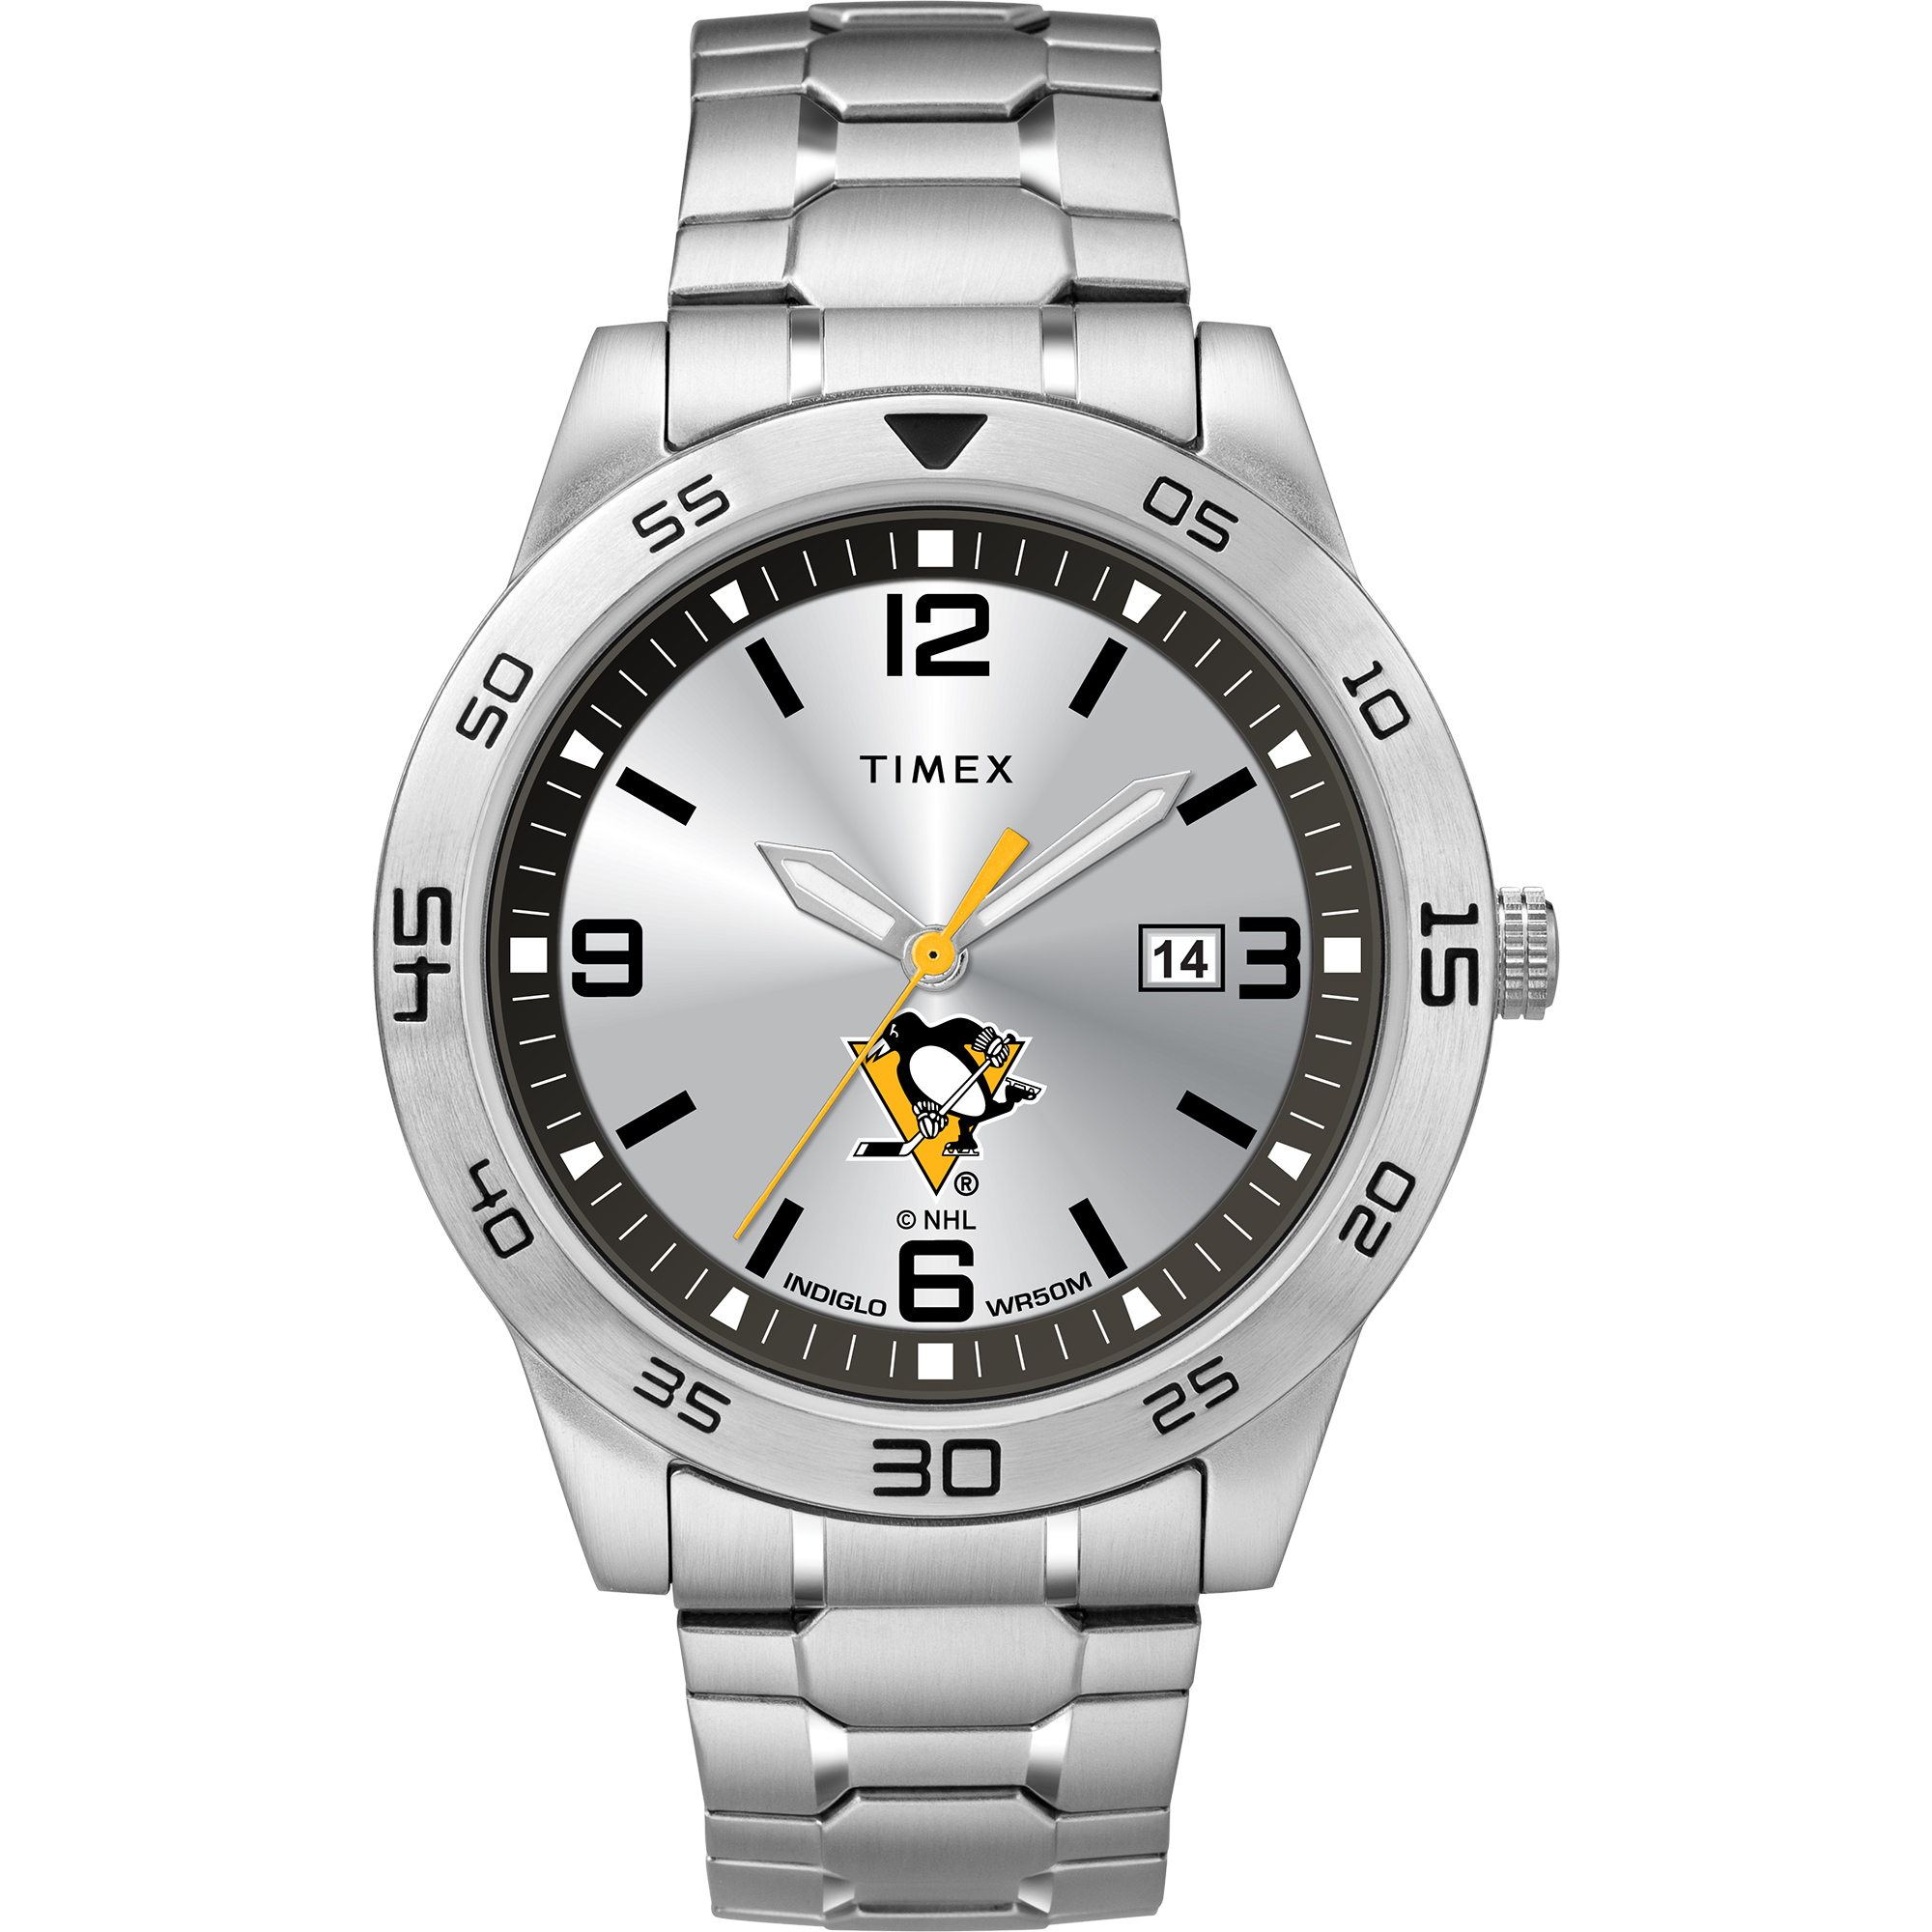 Timex - NHL Tribute Collection Citation Men's Watch, Pittsburgh Penguins